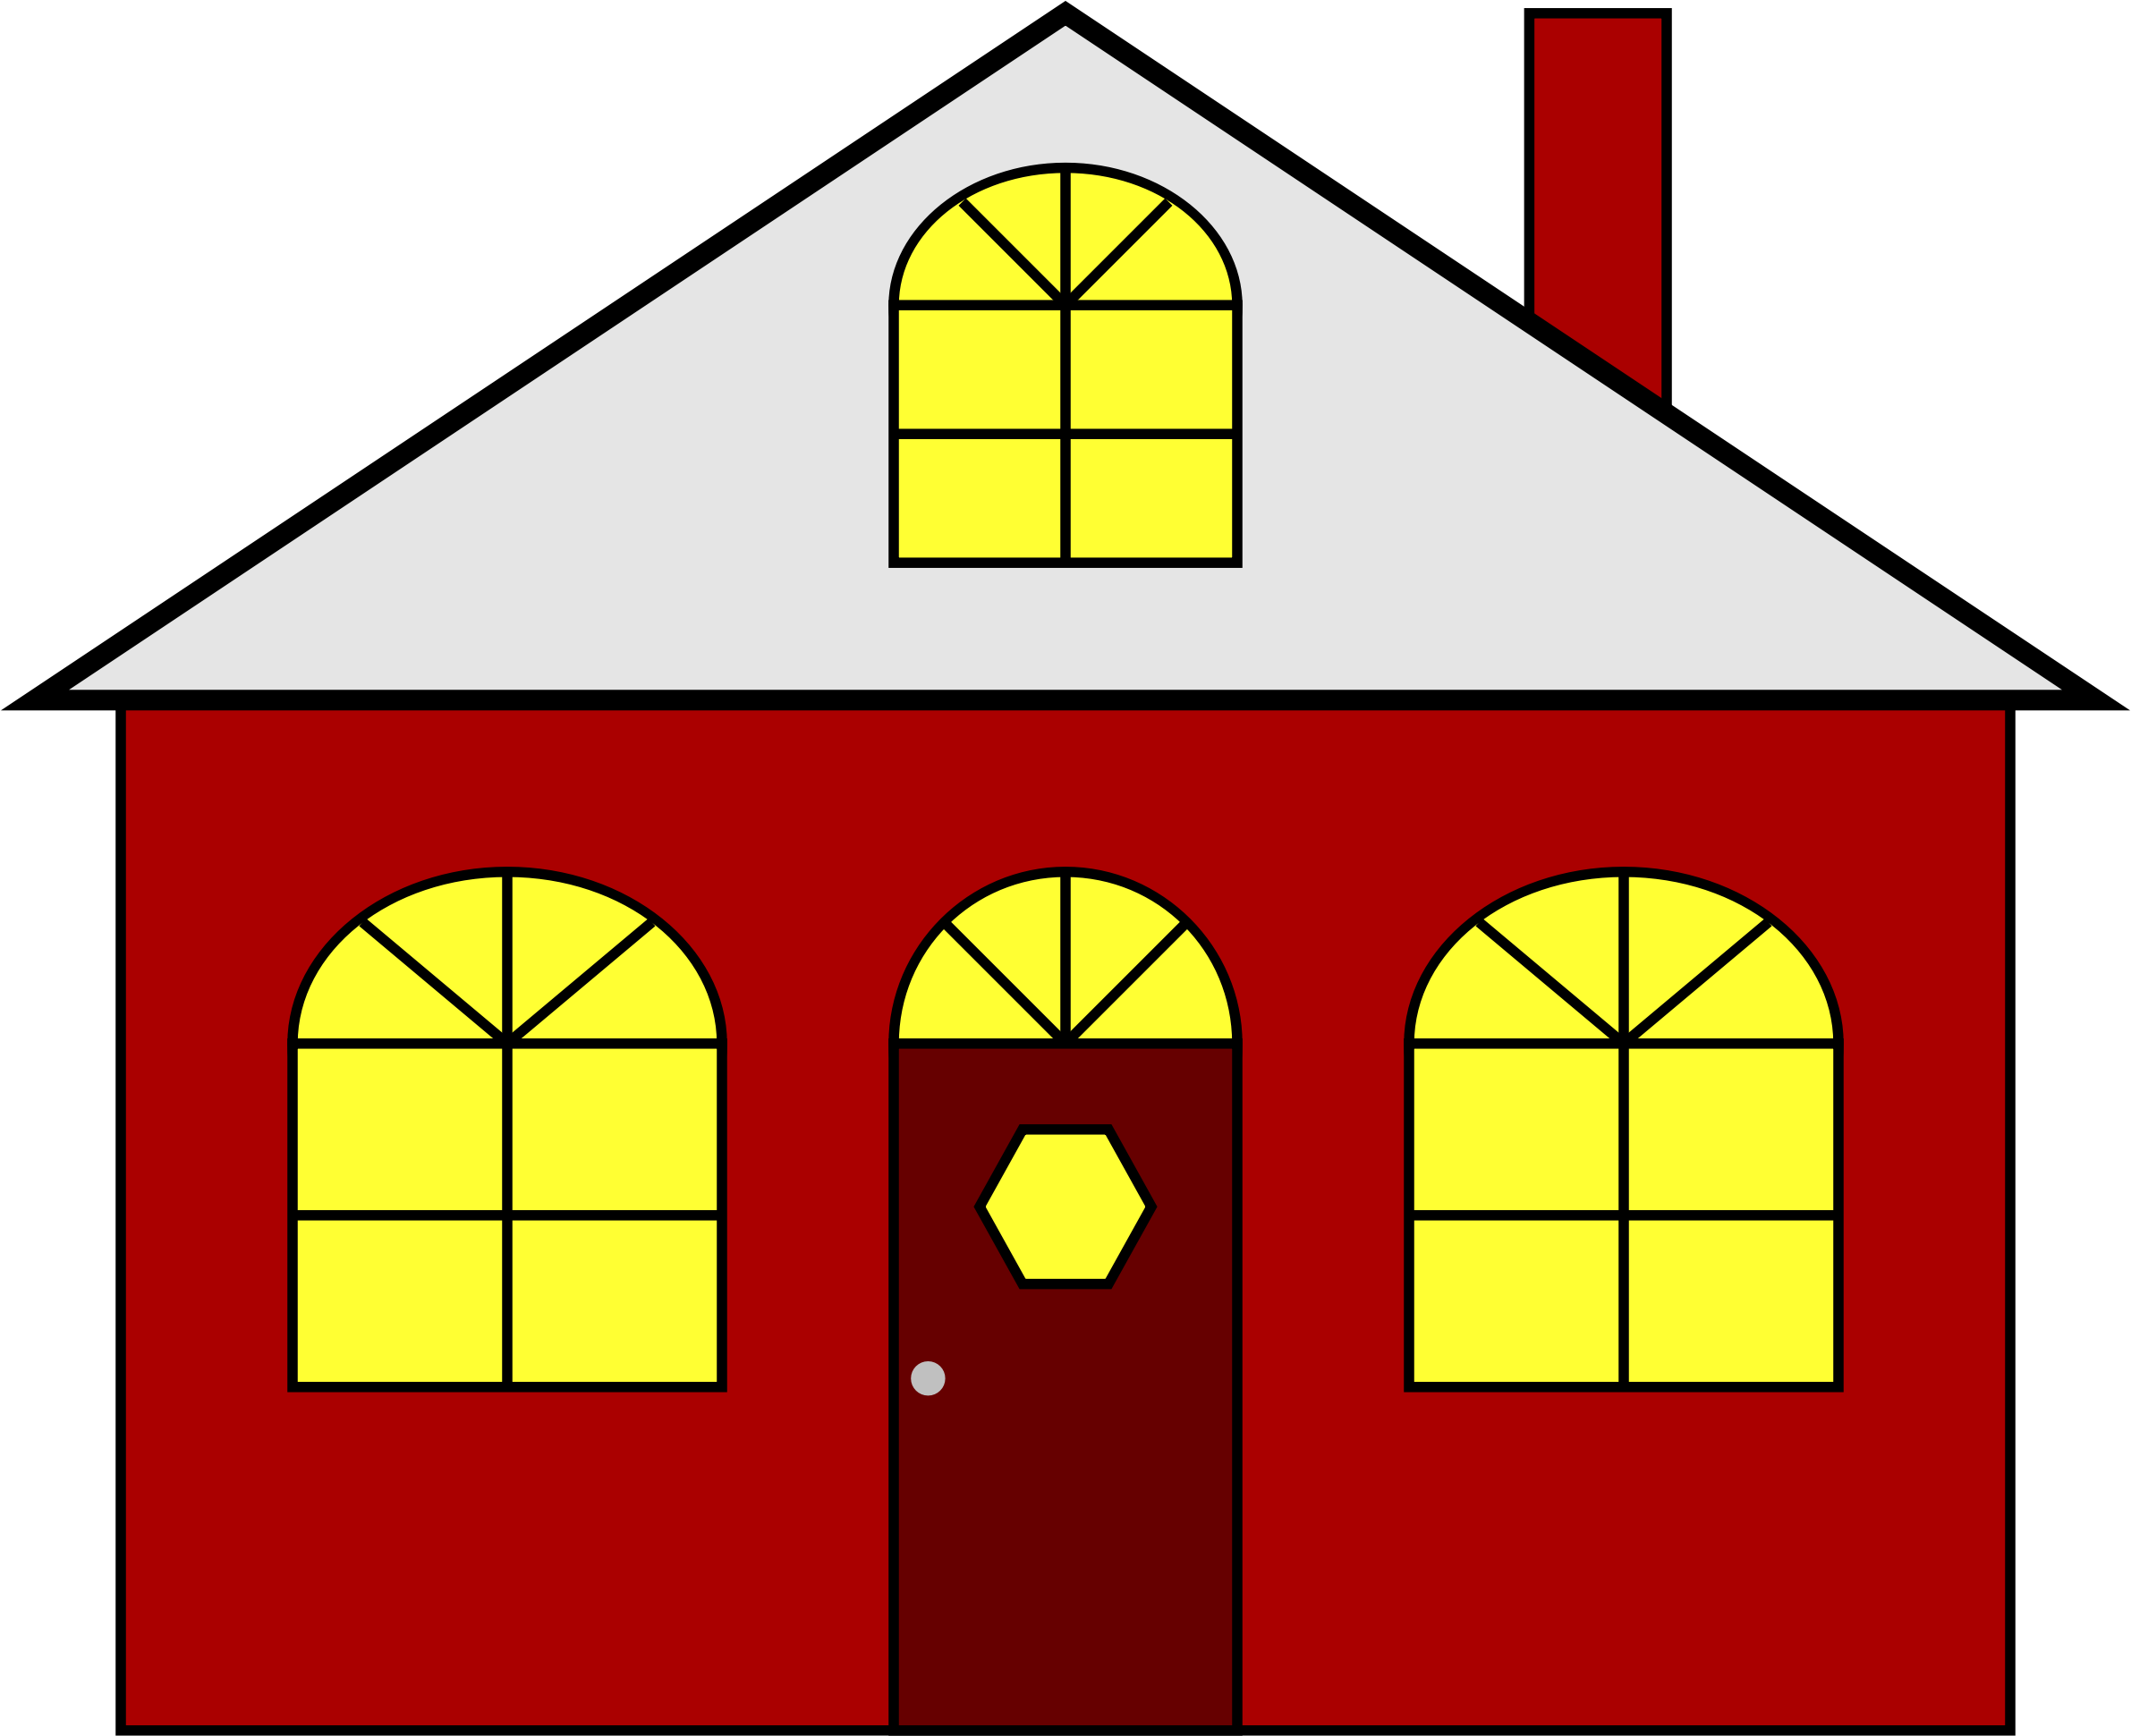 House shape clipart free download Clipart - Lighted House free download